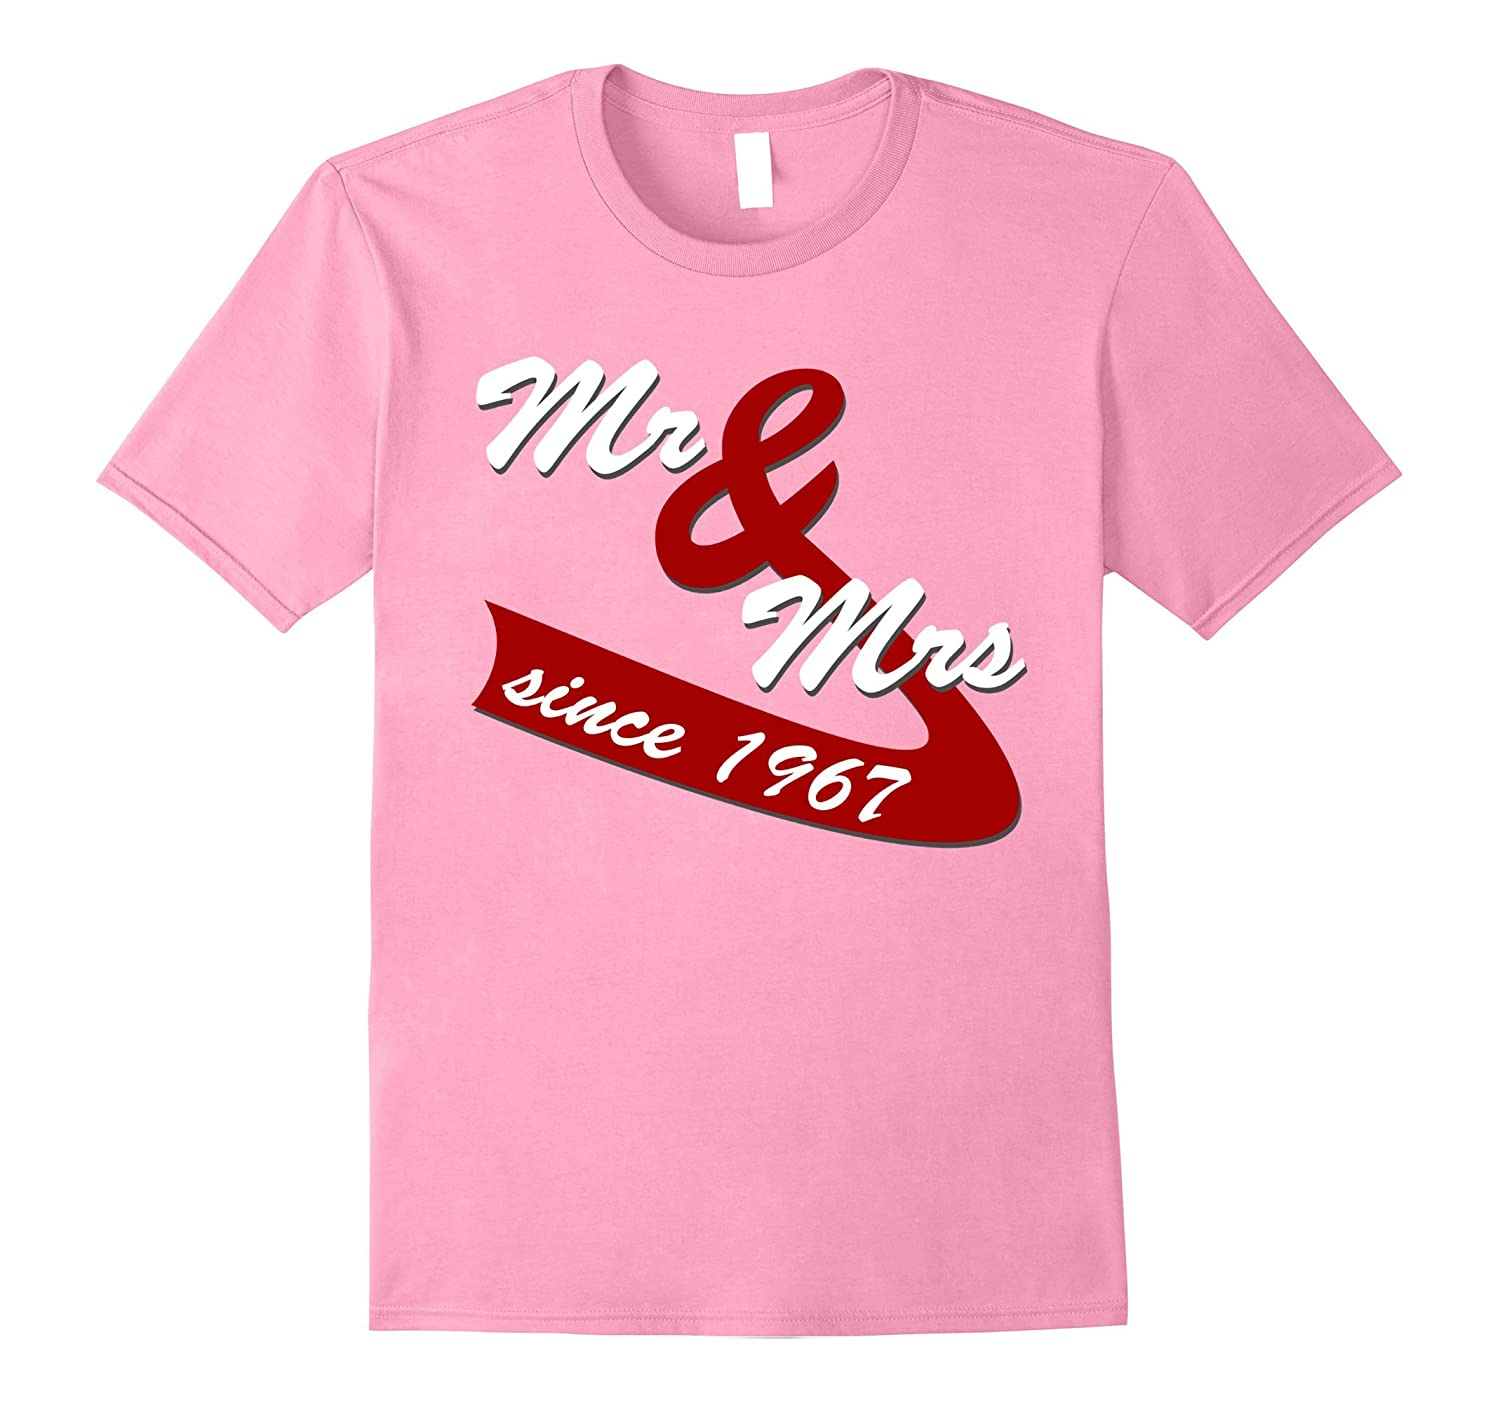 50th Wedding Anniversary Gift Ideas Couples T shirt-TH - TEEHELEN